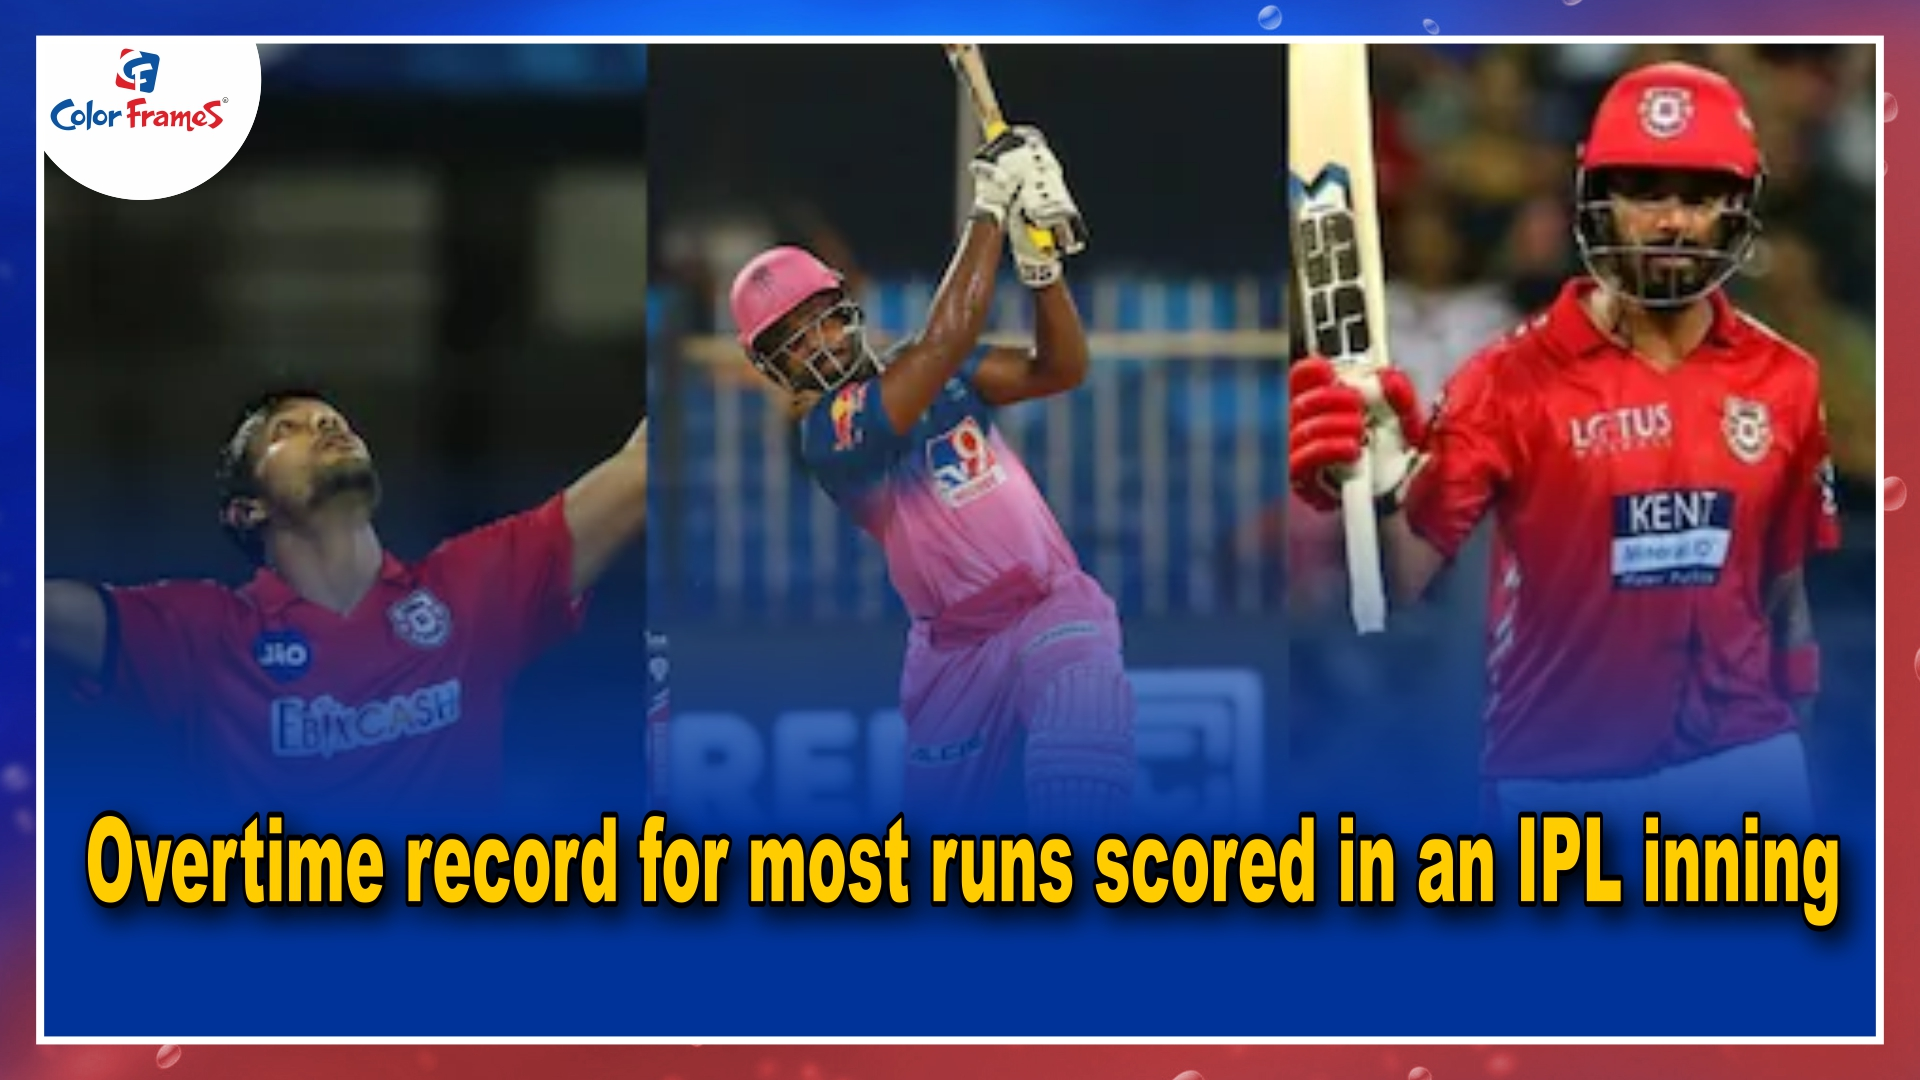 IPL 2021: Overtime record for most runs scored in an IPL inning